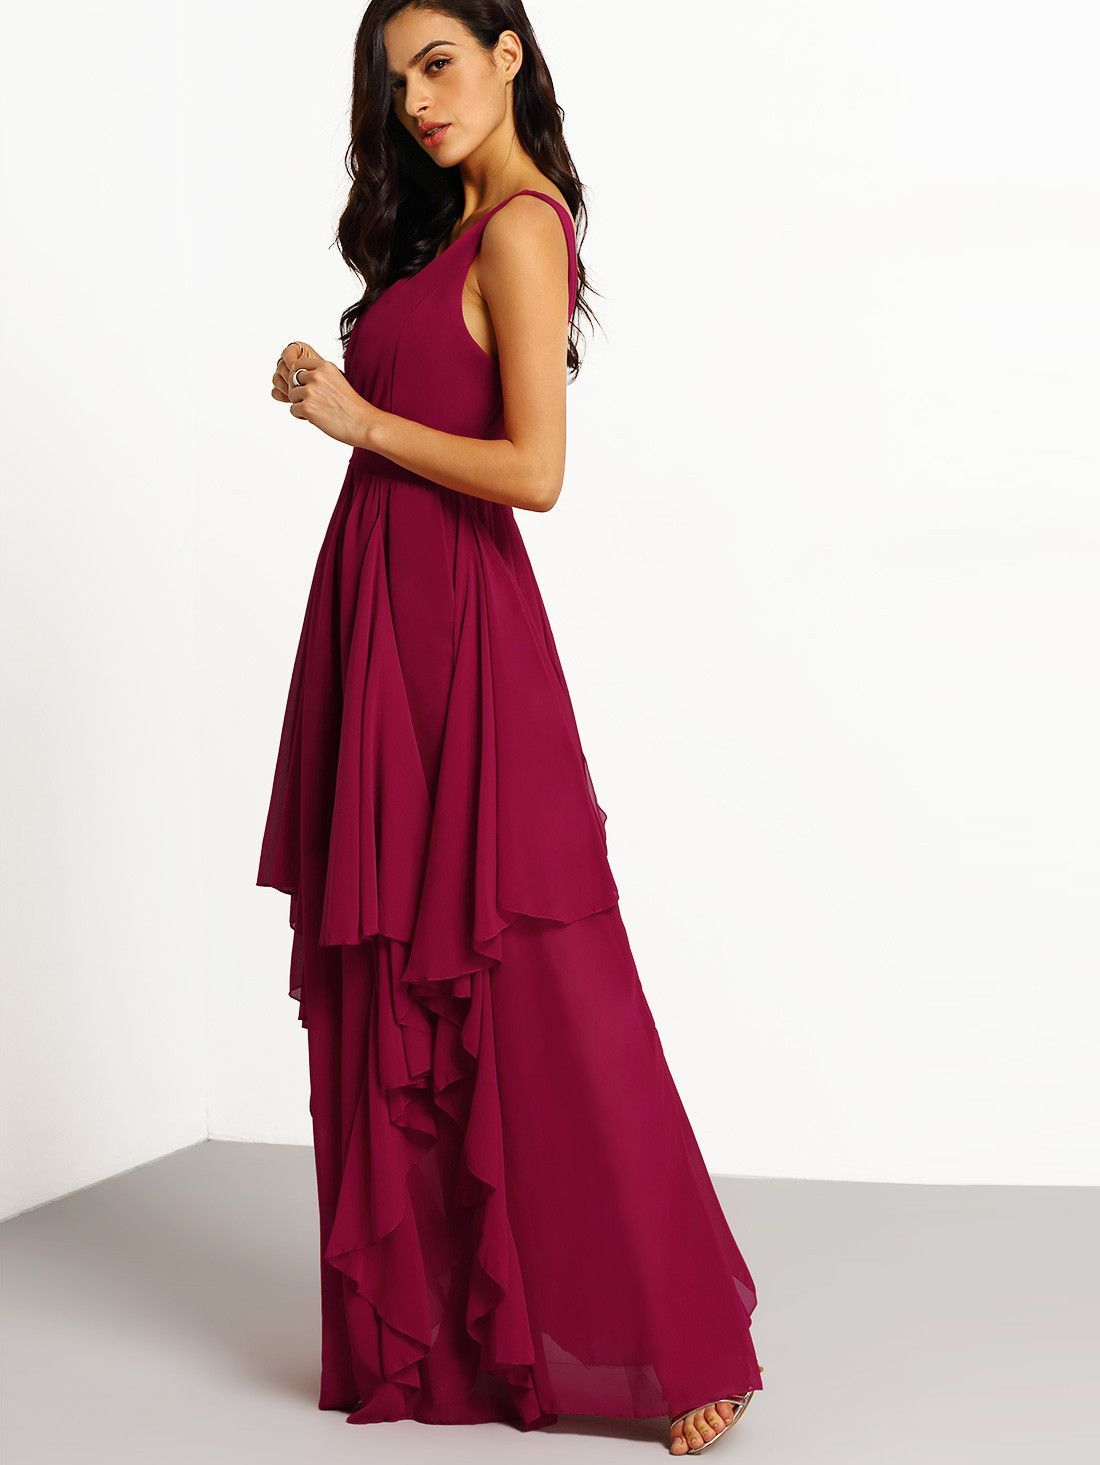 Fabric Has No Stretch Season Summer Pattern Type Plain Sleeve Length Sleeveless Color Burgundy Dresses Maxi Style Party Material